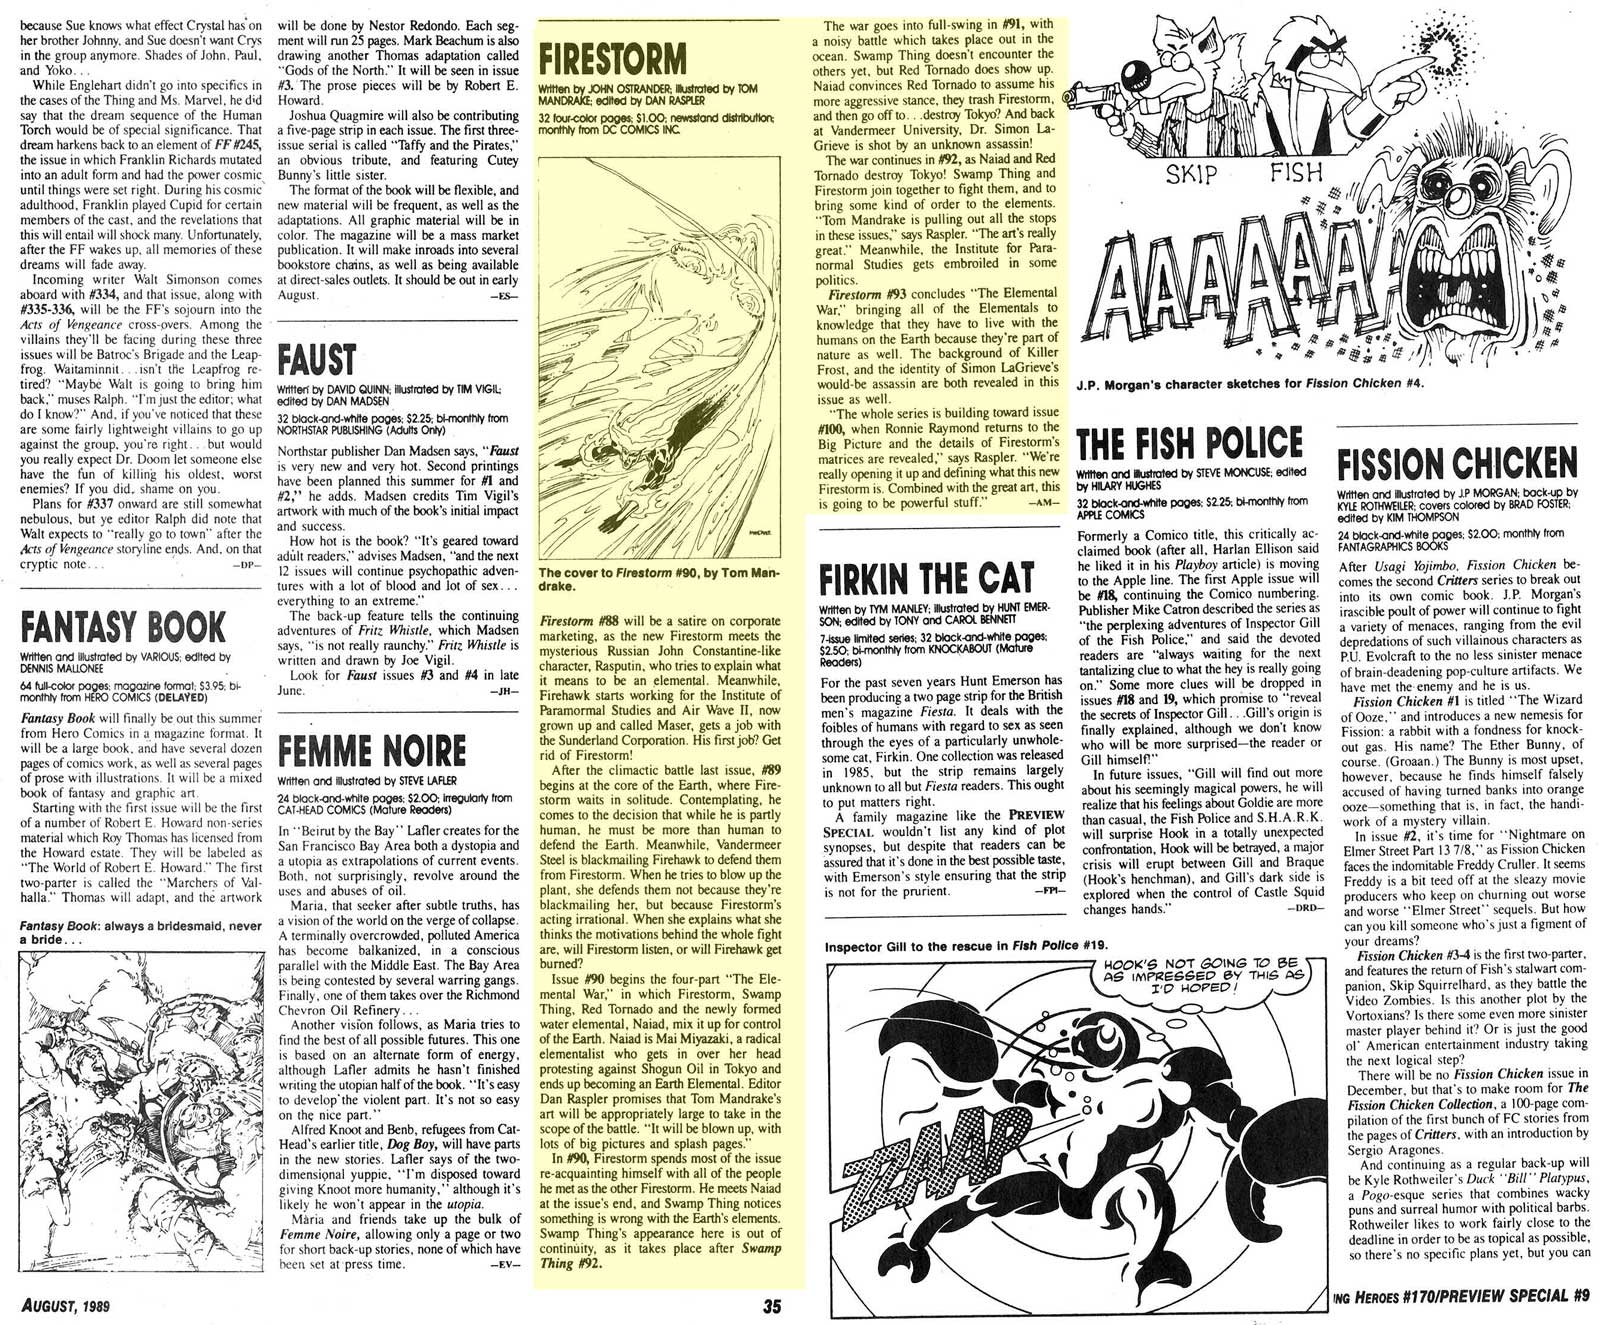 Amazing Heroes #170/Preview Special #9 - August 1989 - Firestorm